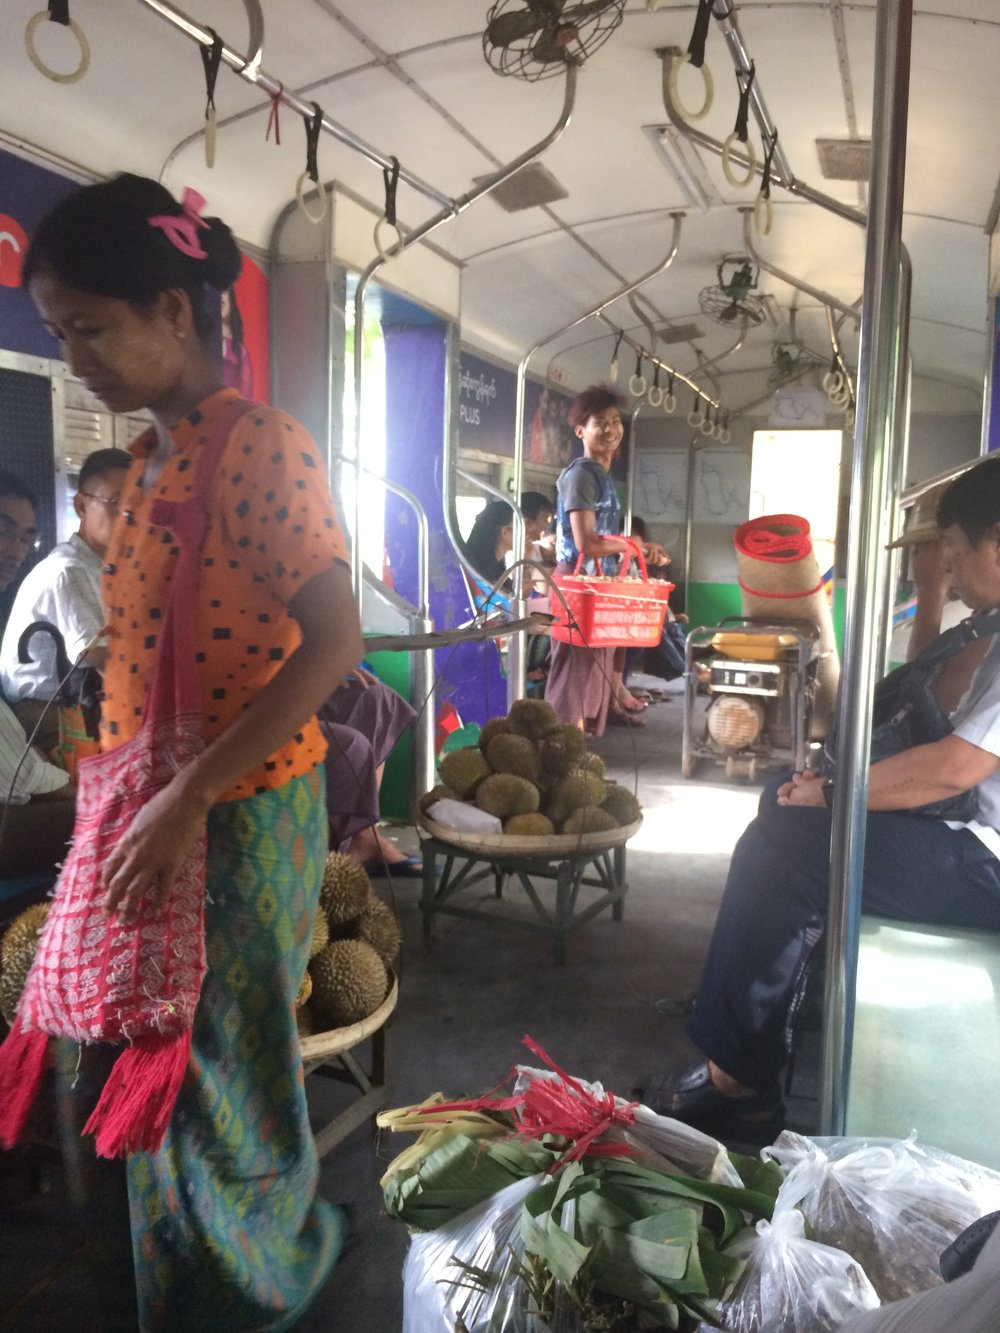 Vendor on train with face makeup